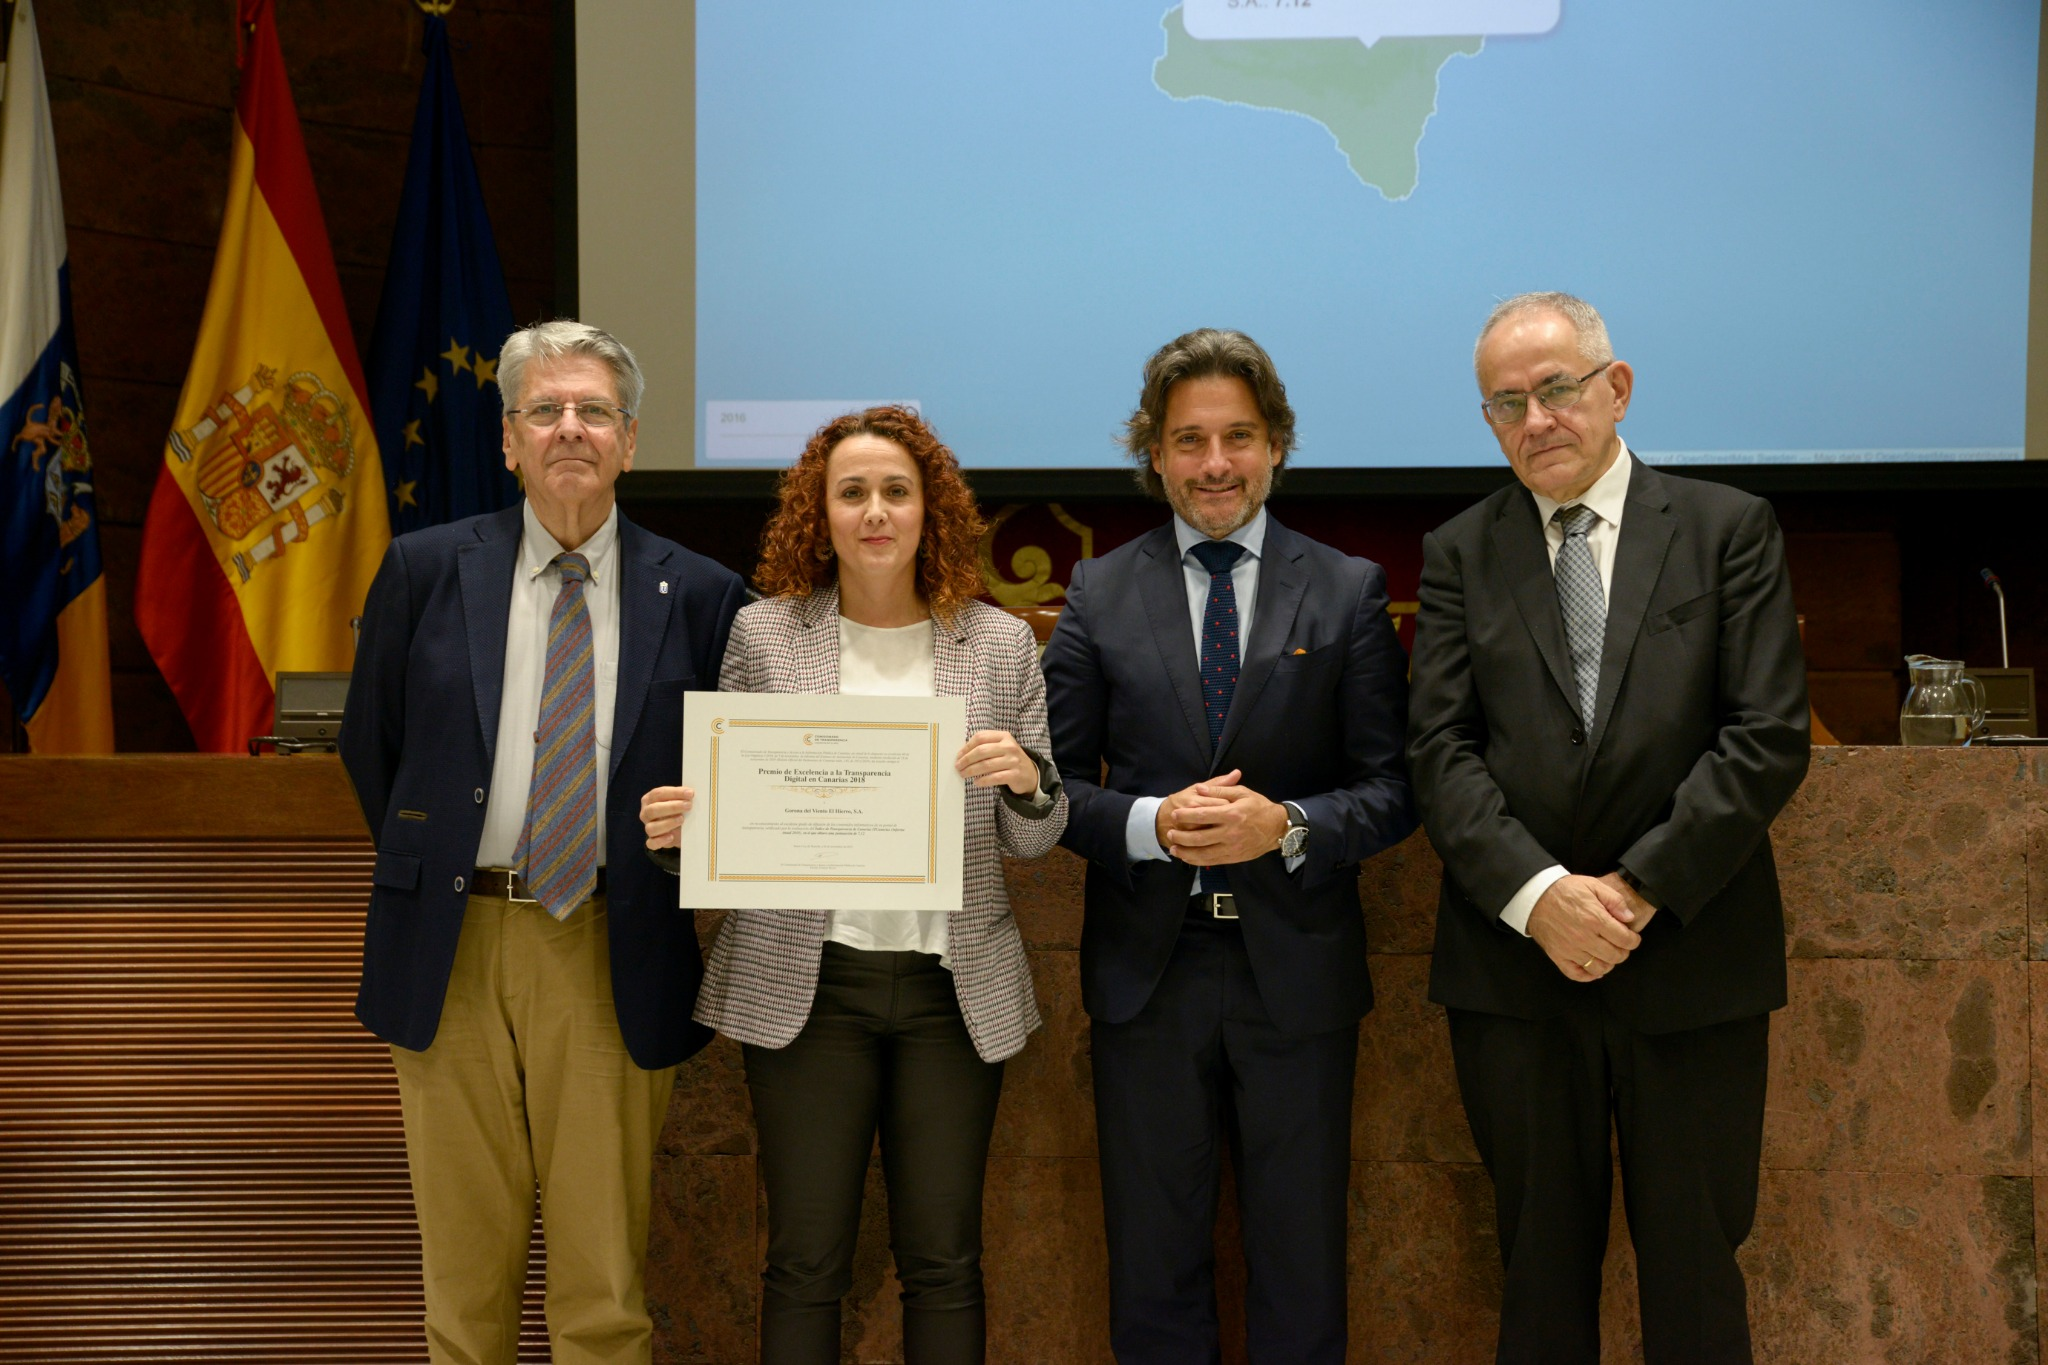 Gorona del Viento, Canary Islands Digital Transparency Excellence Award